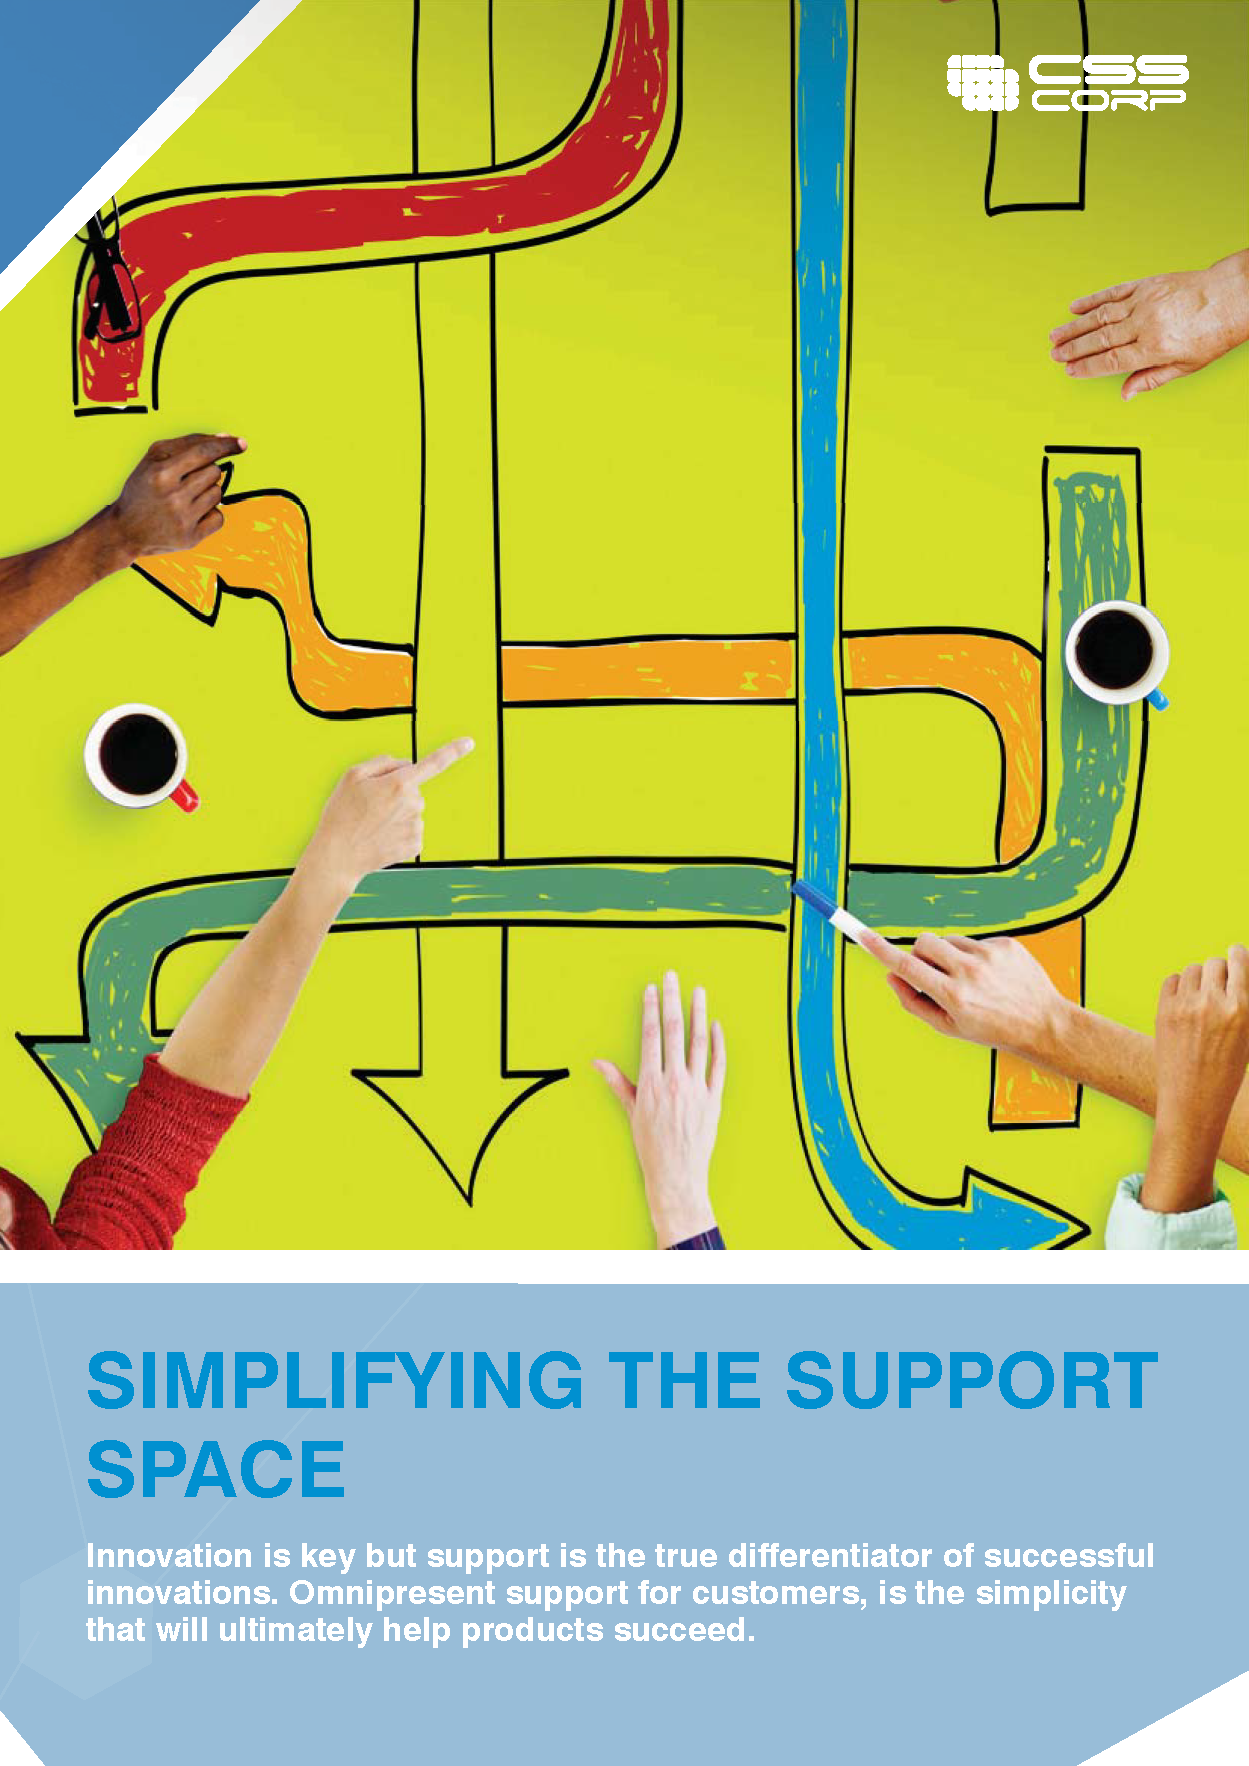 Simplifying the Support Space